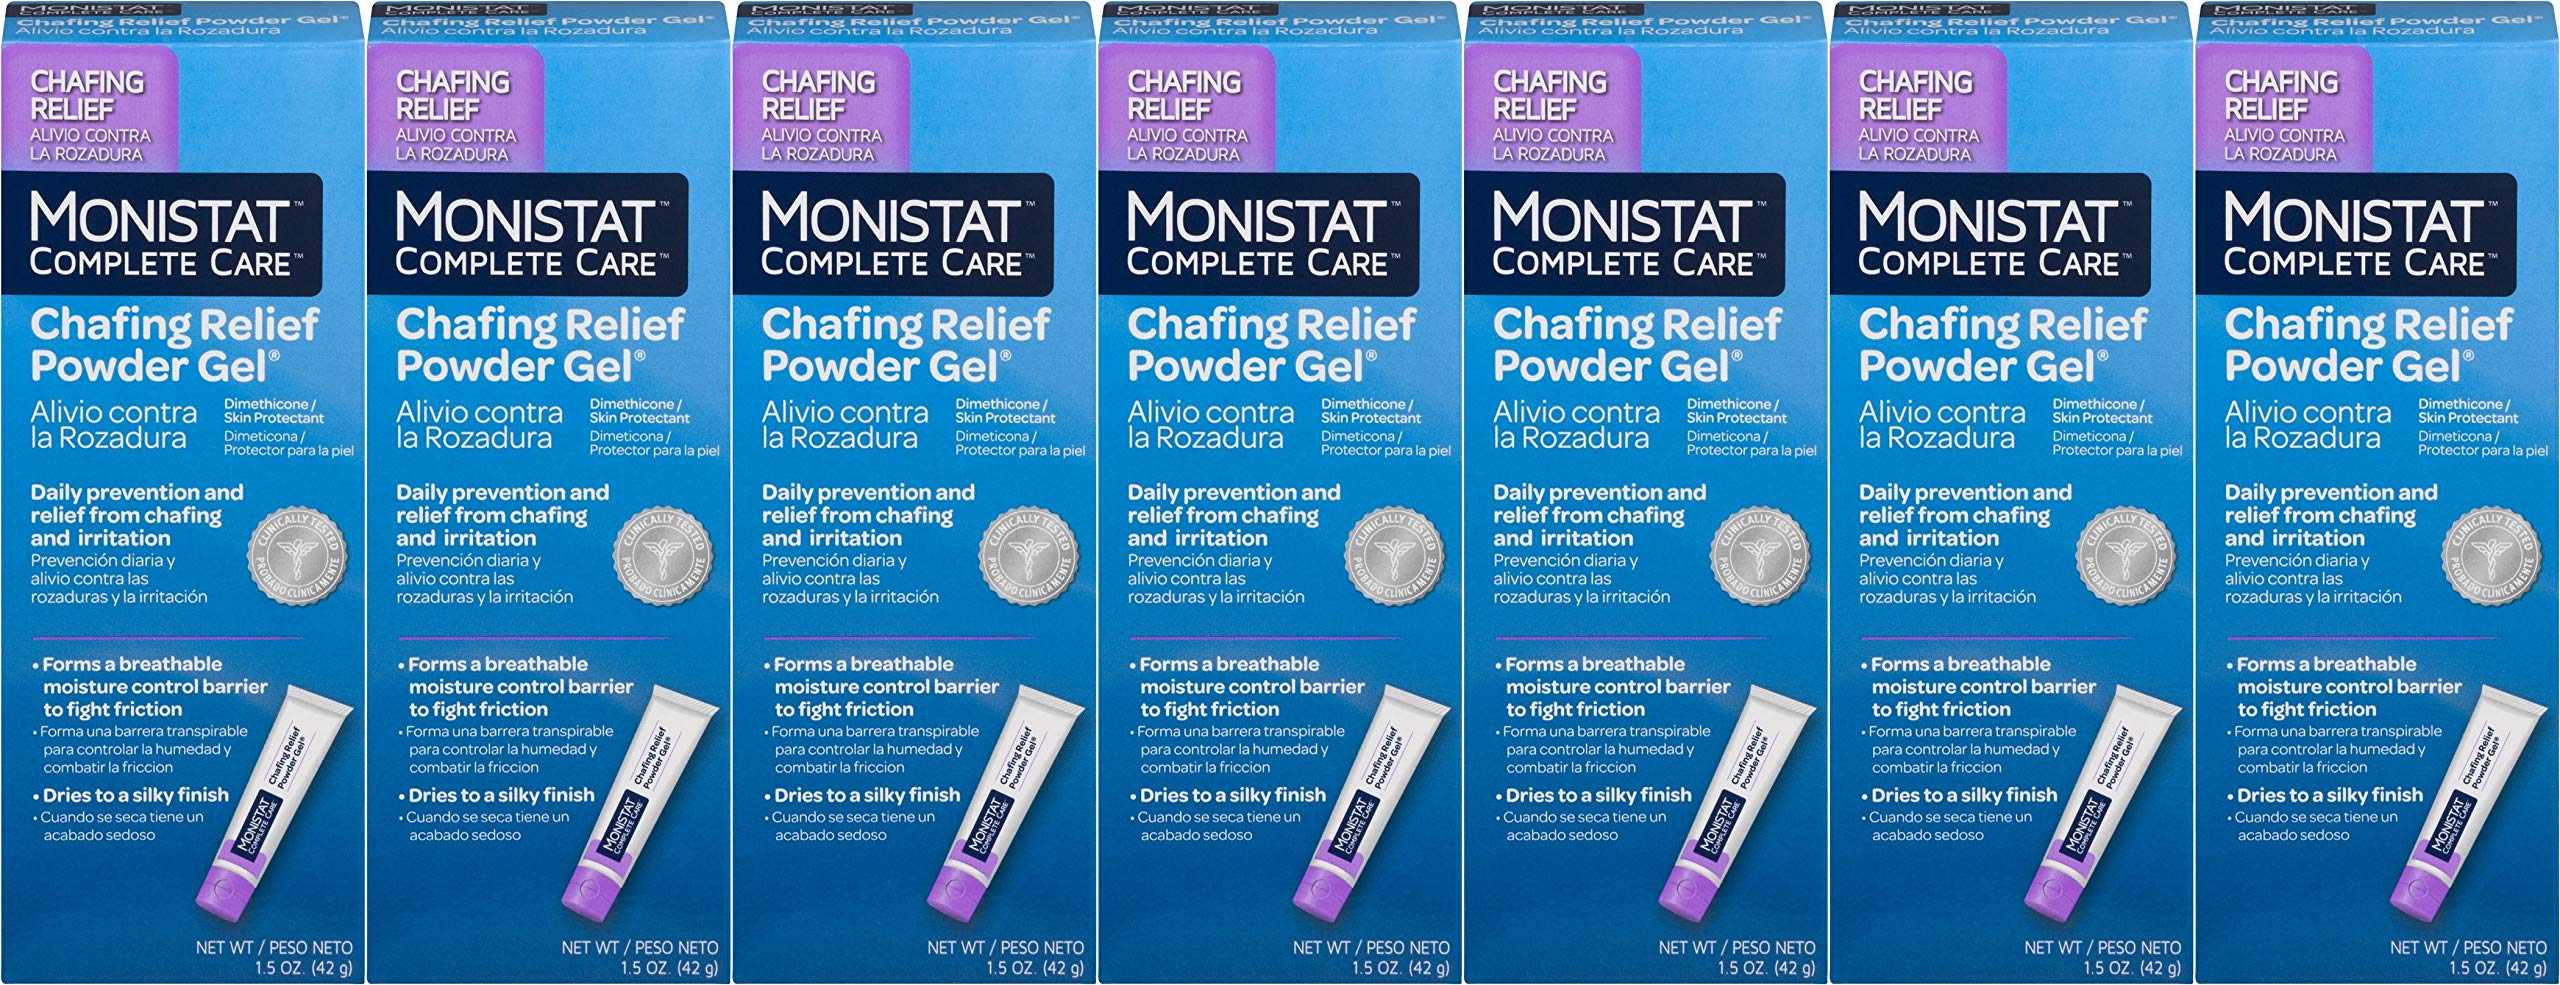 MONISTAT Chafing Relief Powder Gel 1.5 oz (Pack of 7)